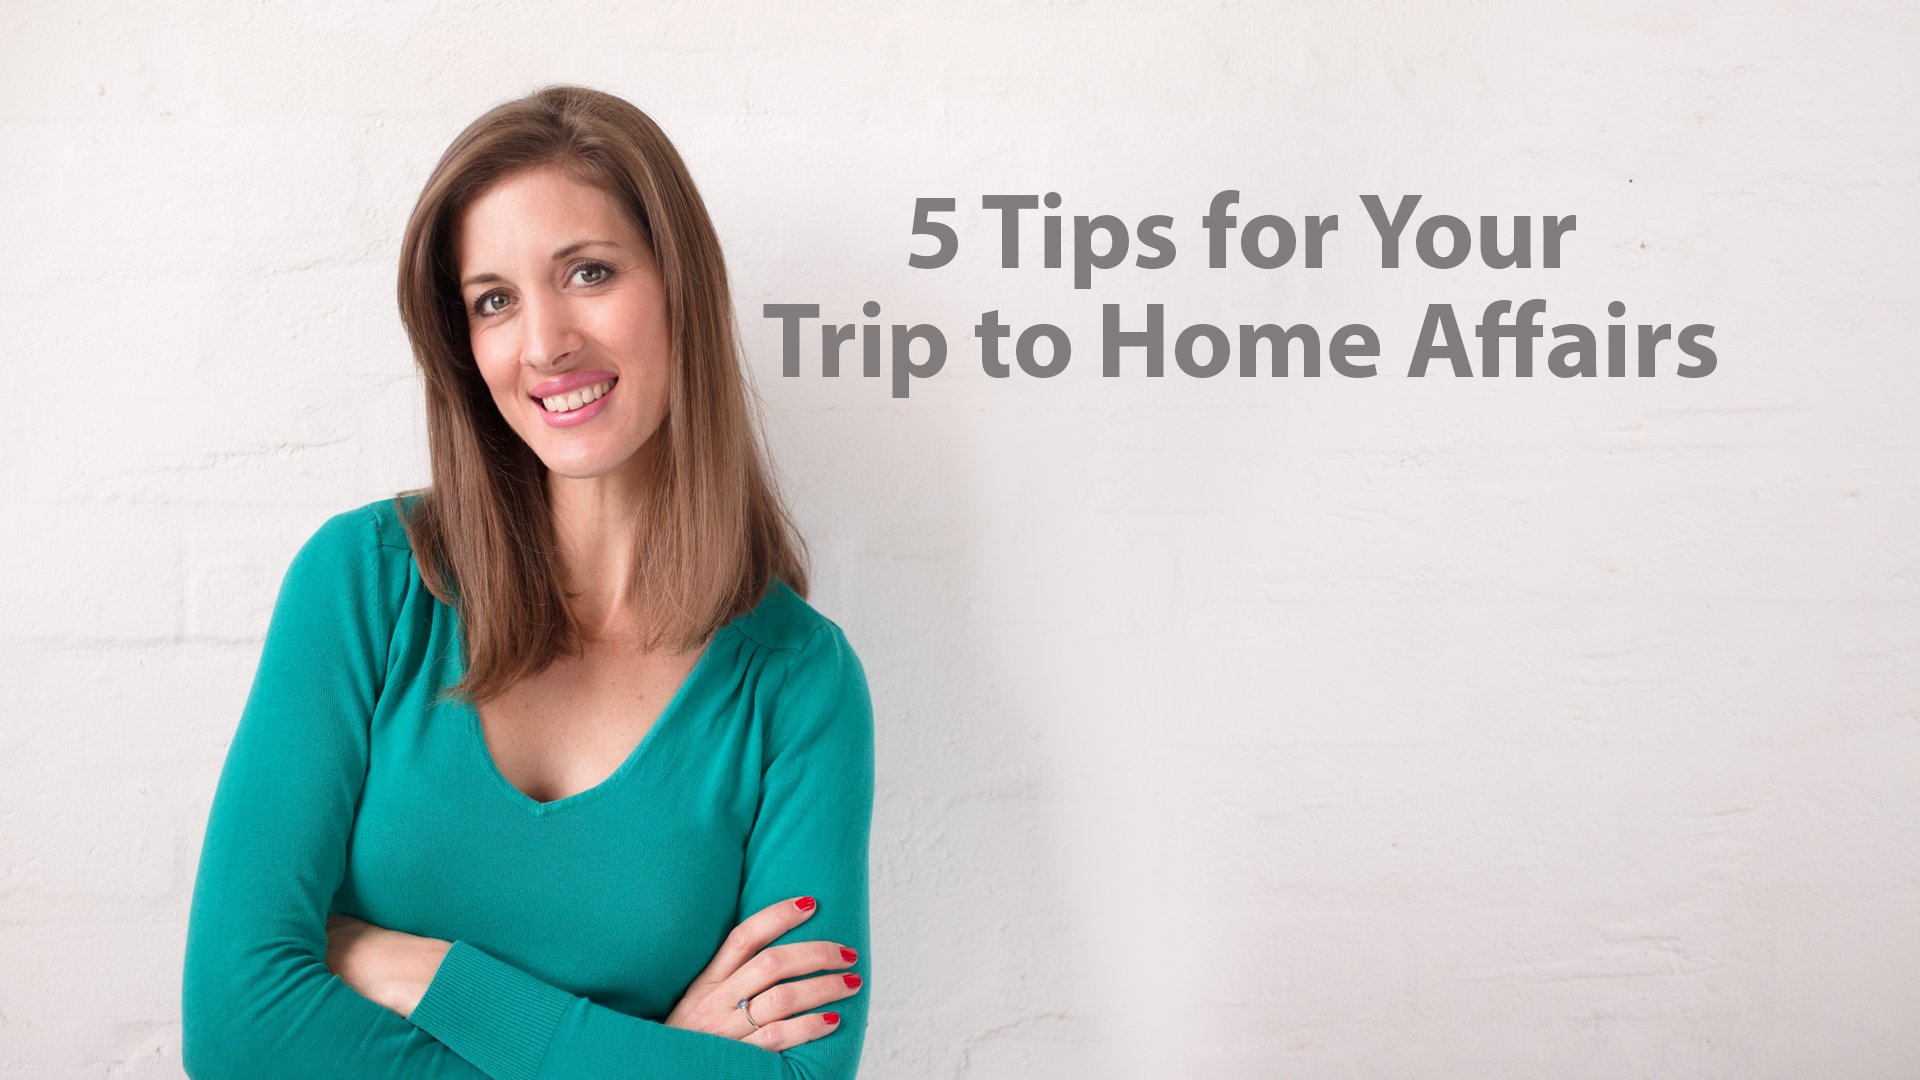 5 Tips for Your Trip to Home Affairs